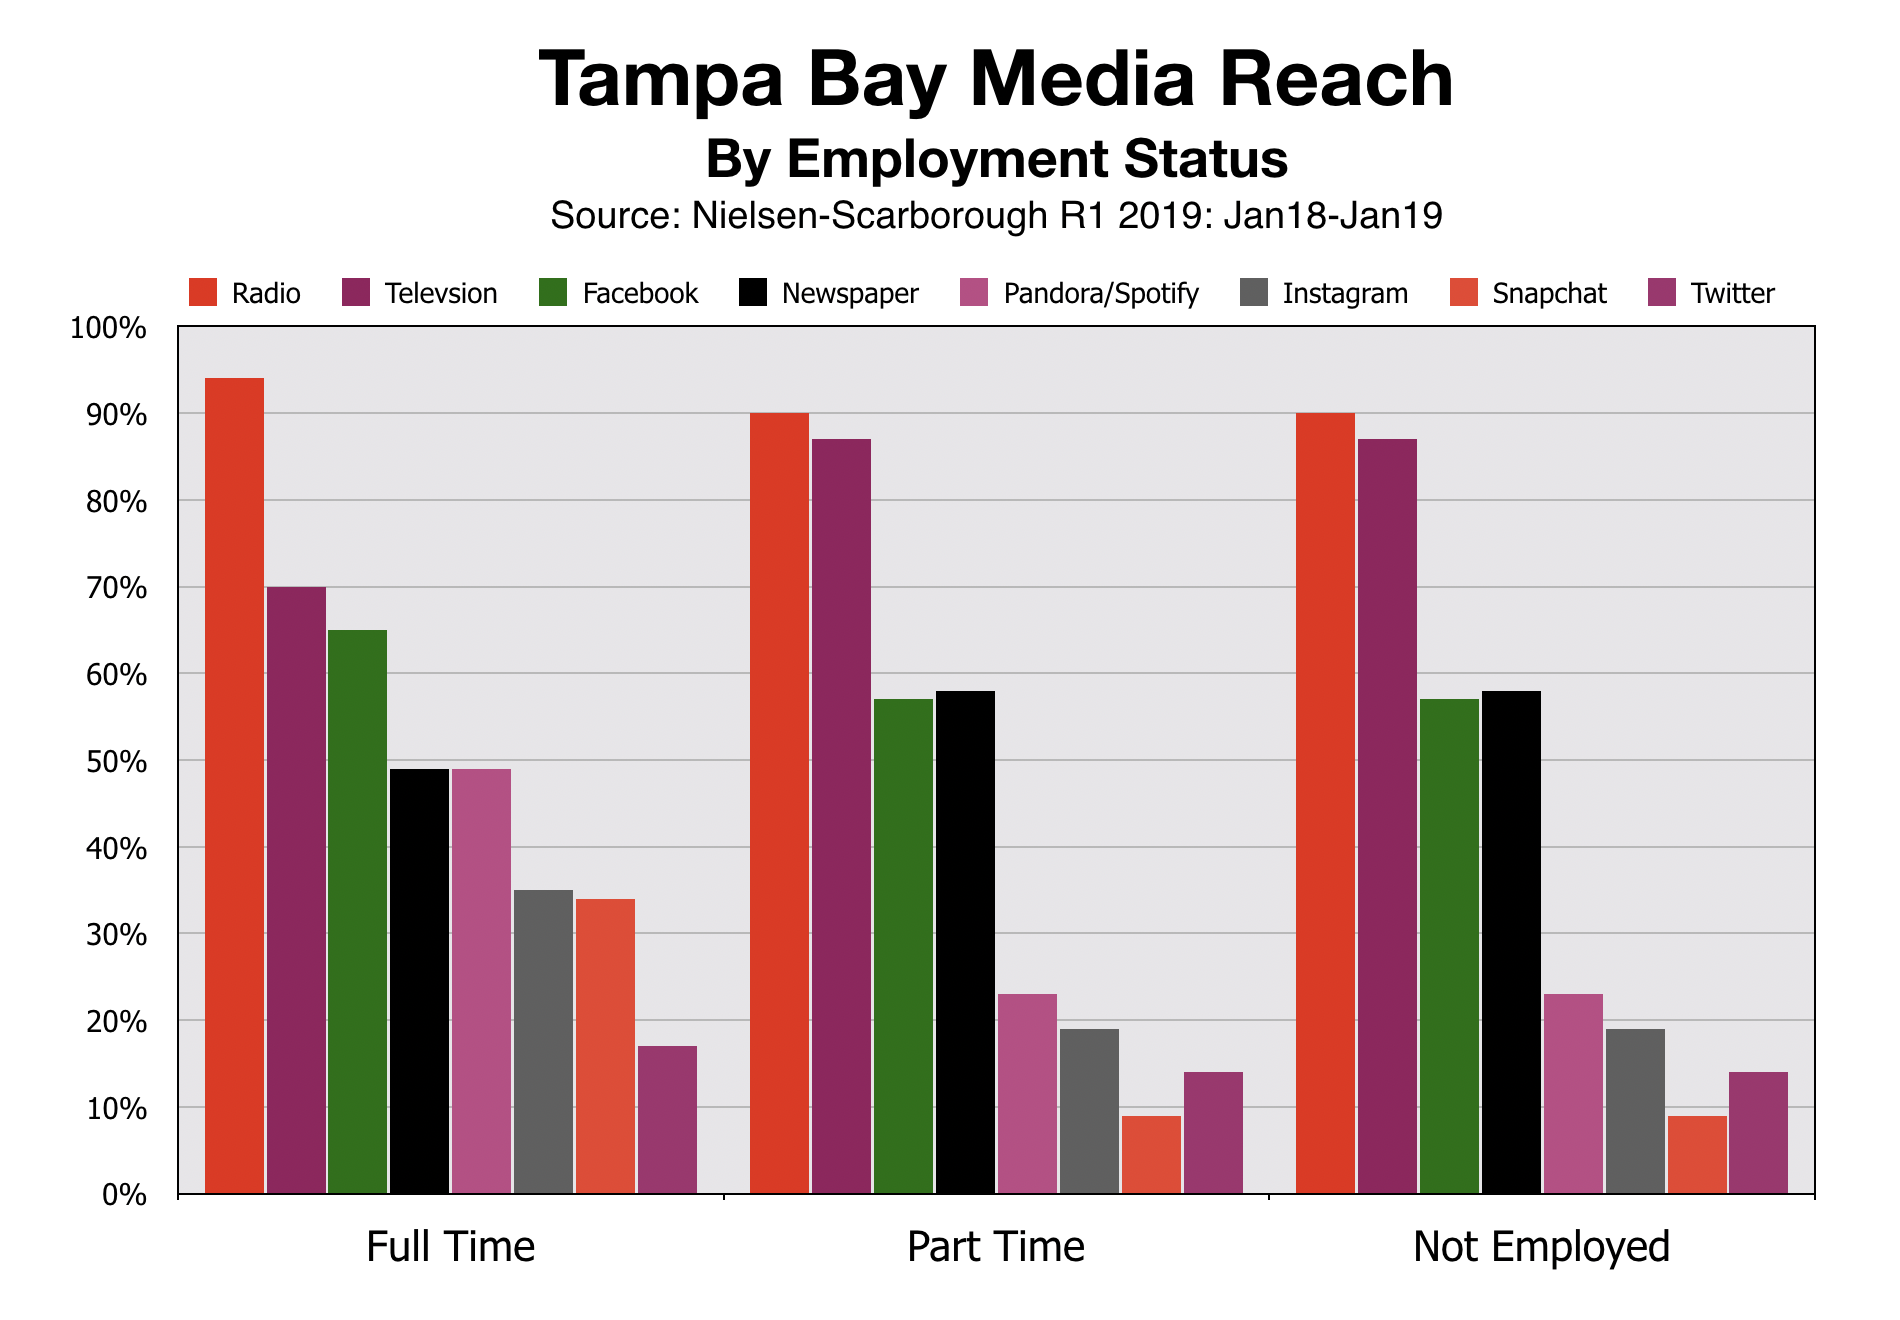 Tampa Bay Media Reach By Employment Status